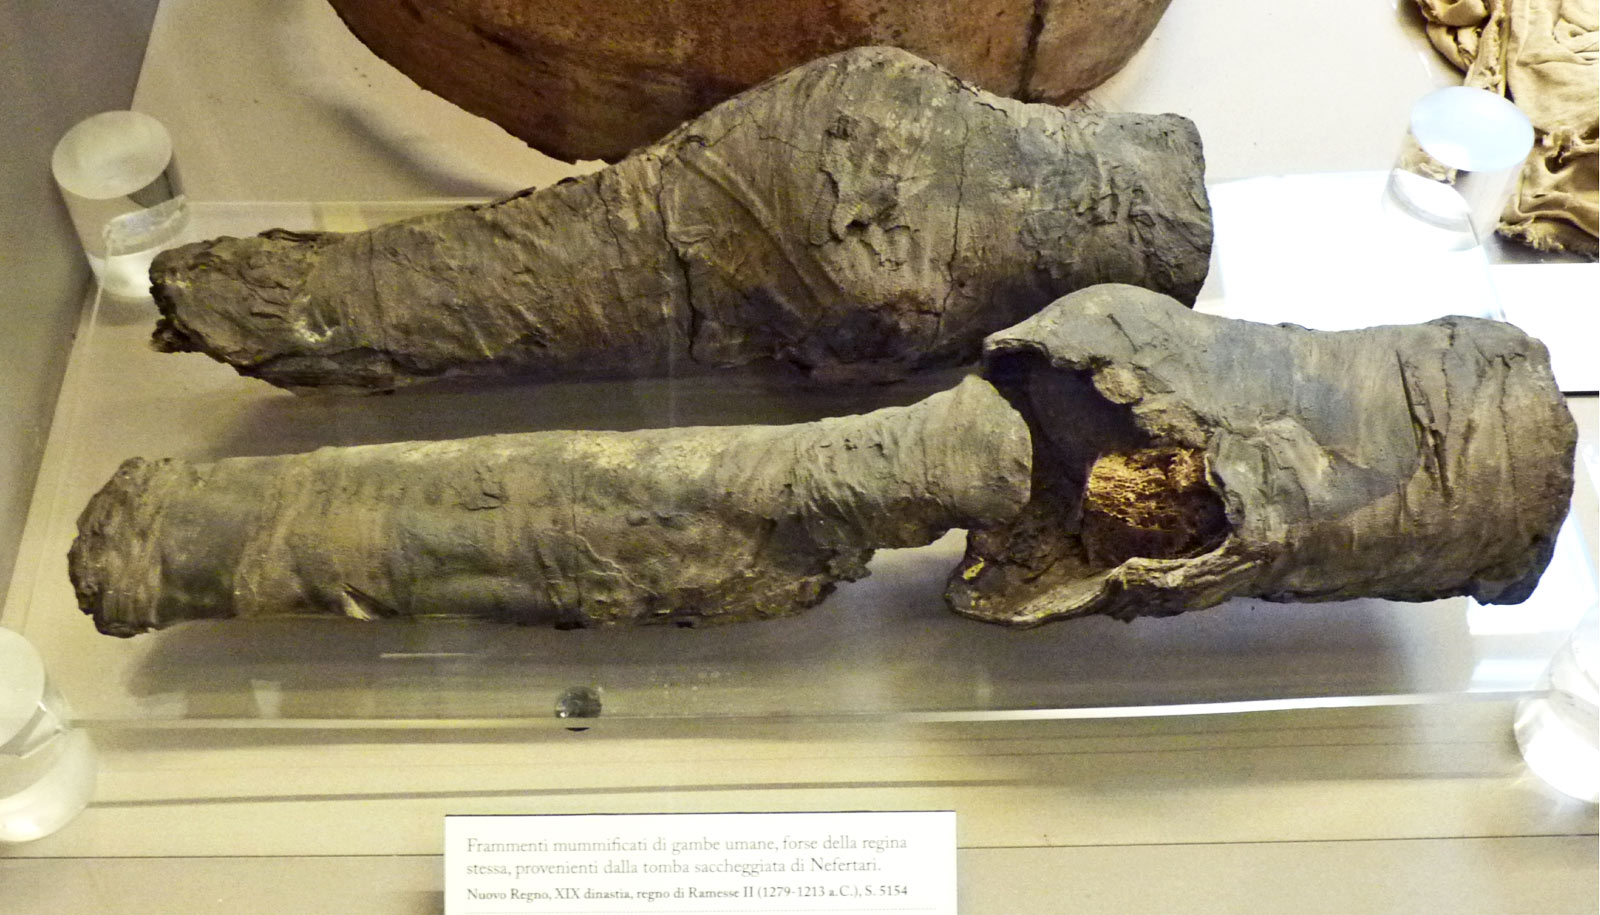 mummy legs of Nefertari